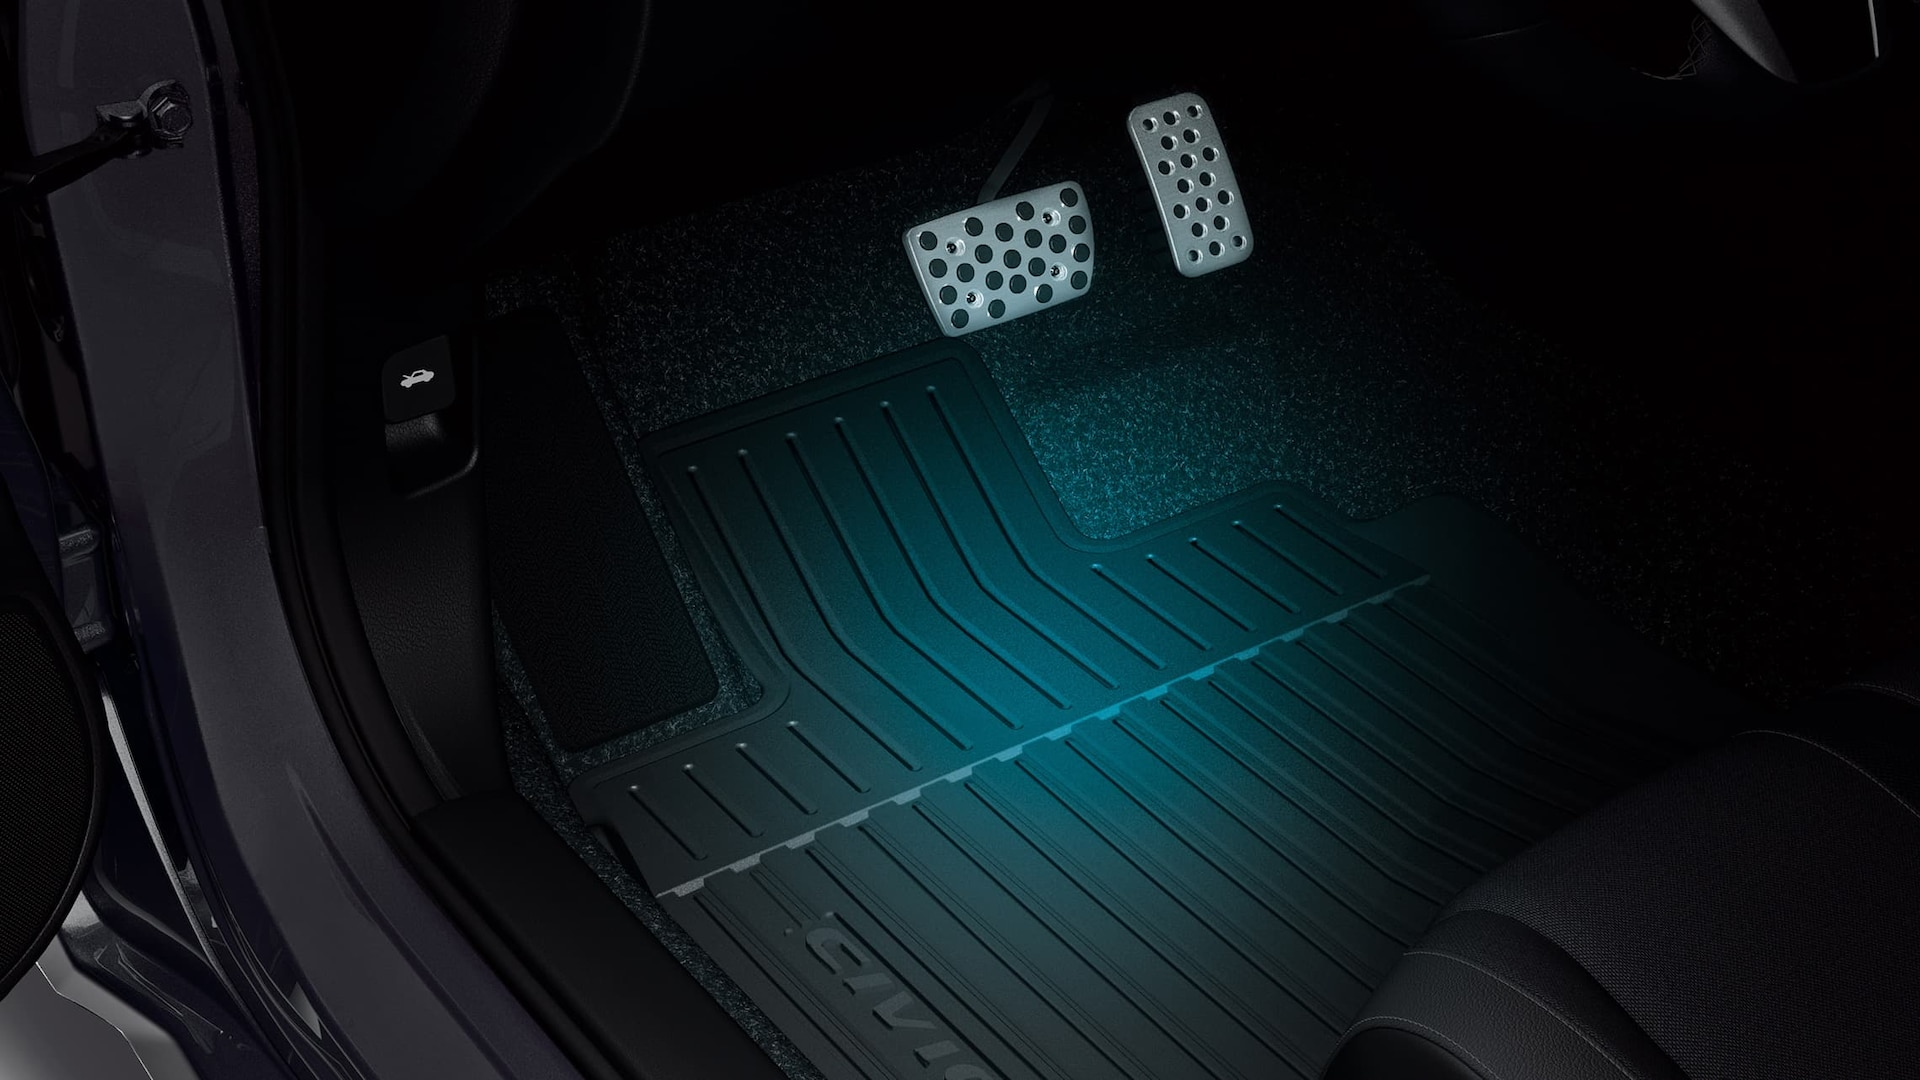 Illuminated all-season floor mat detail in the 2020 Honda Civic Sedan.